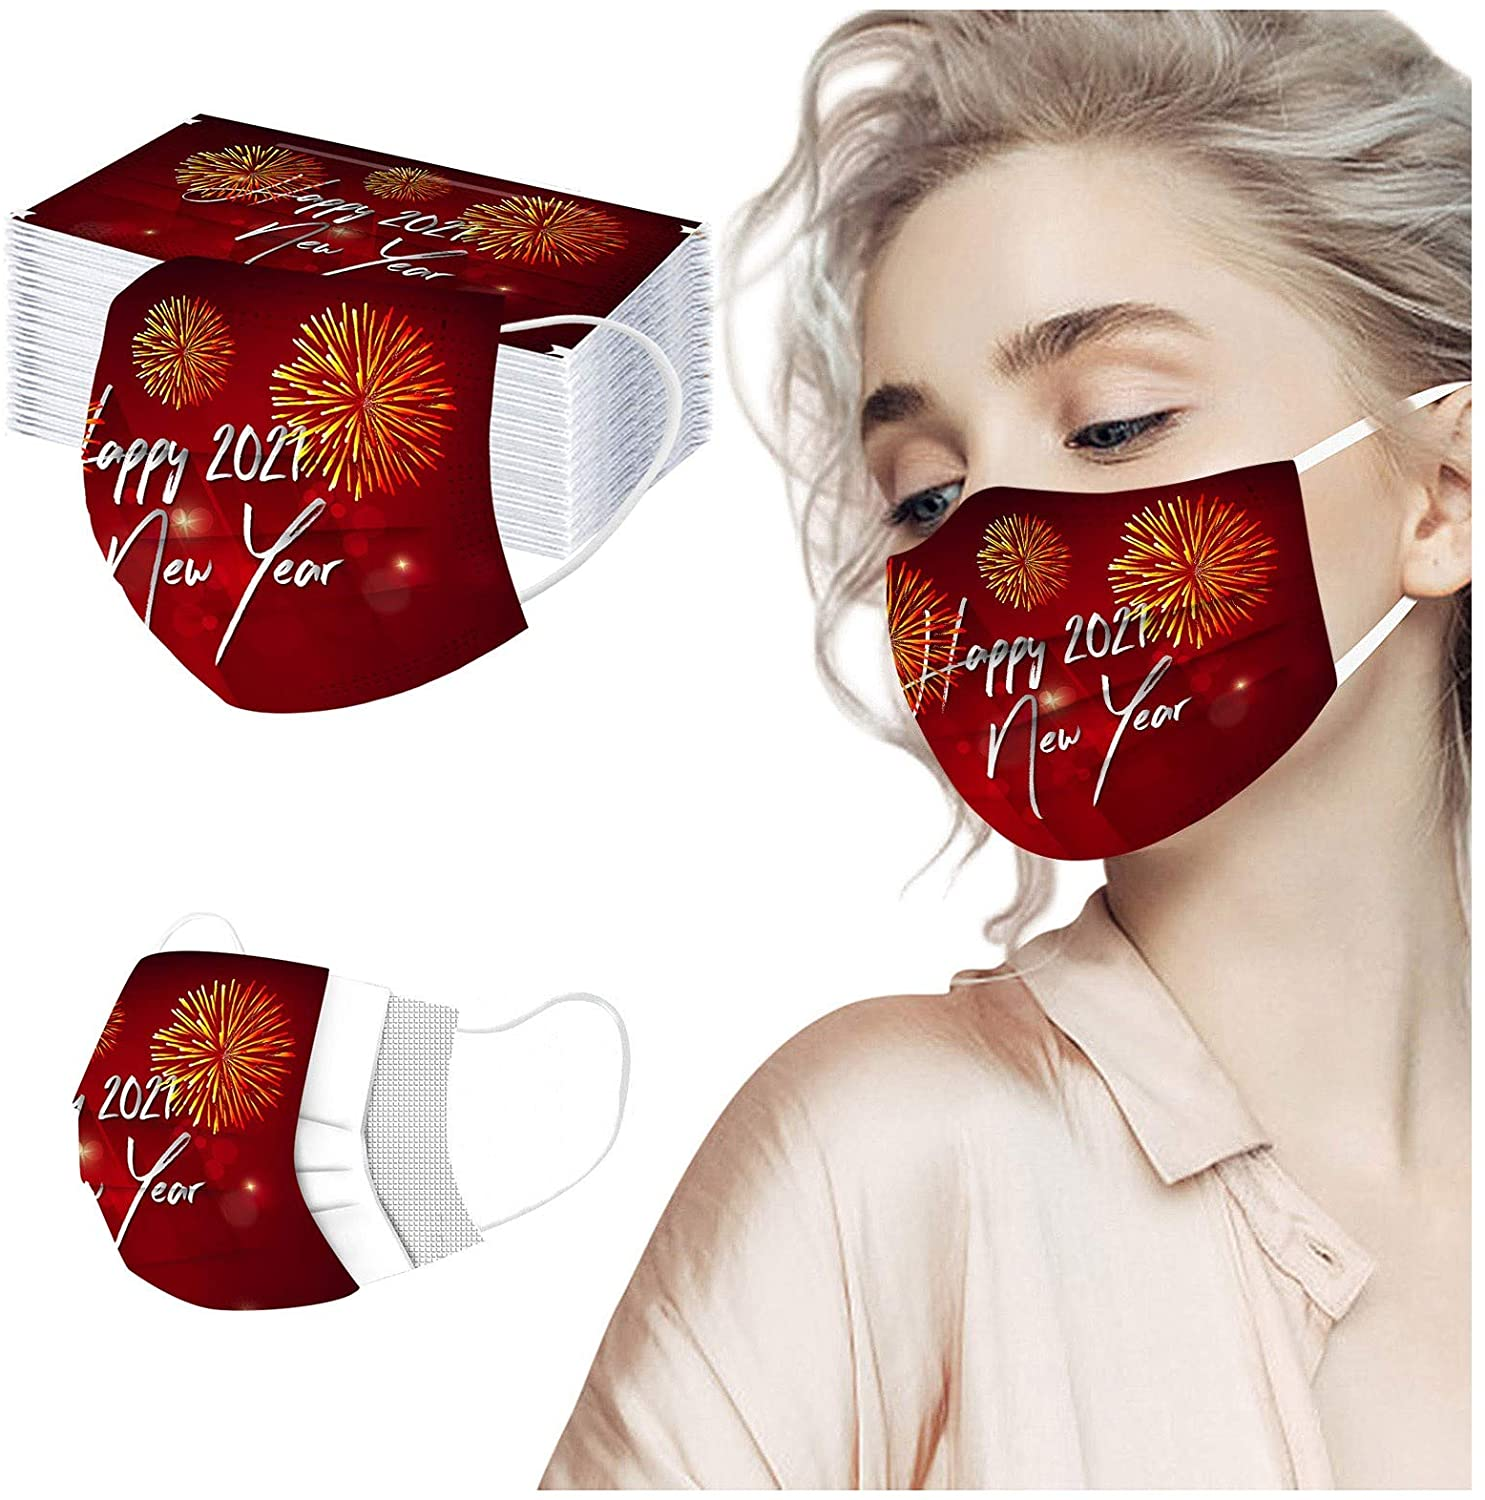 50 Pcs Disposable Face_Mask for Women, Men - 2021 New Year Printed Anti Dust 3 Layer Face Protection Bandanas